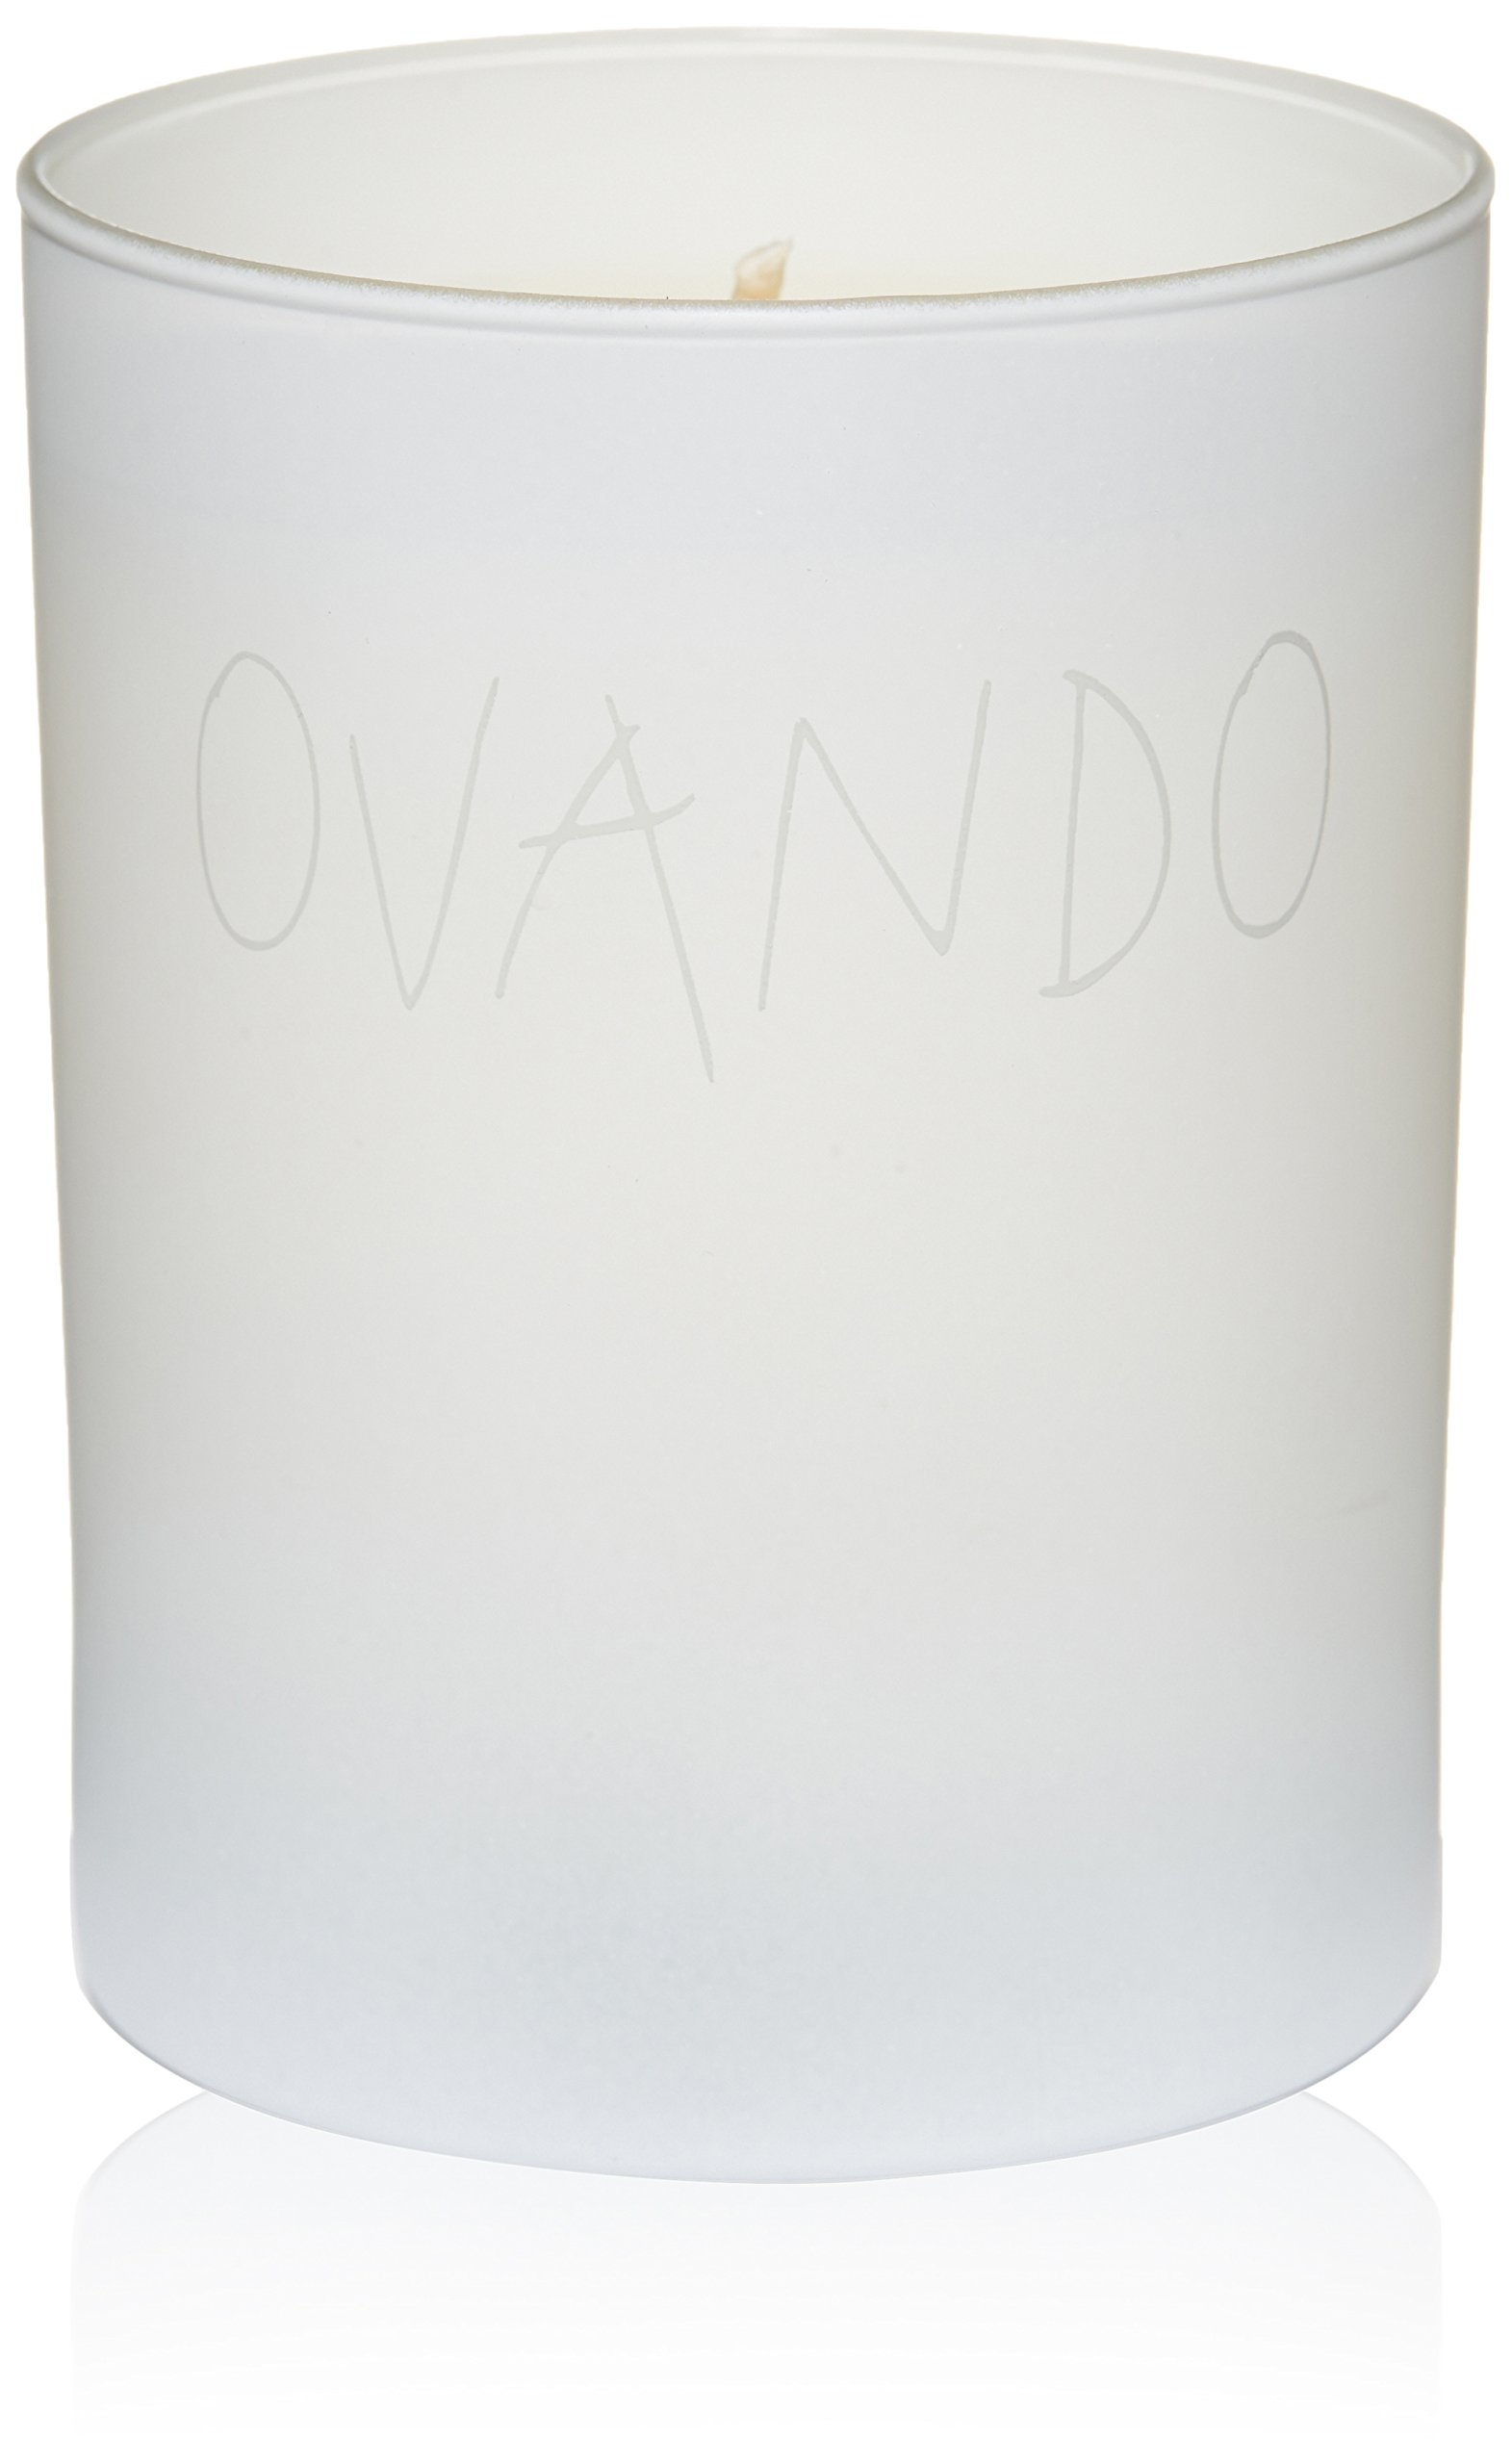 Ovando Vernissage Fragrance Candles